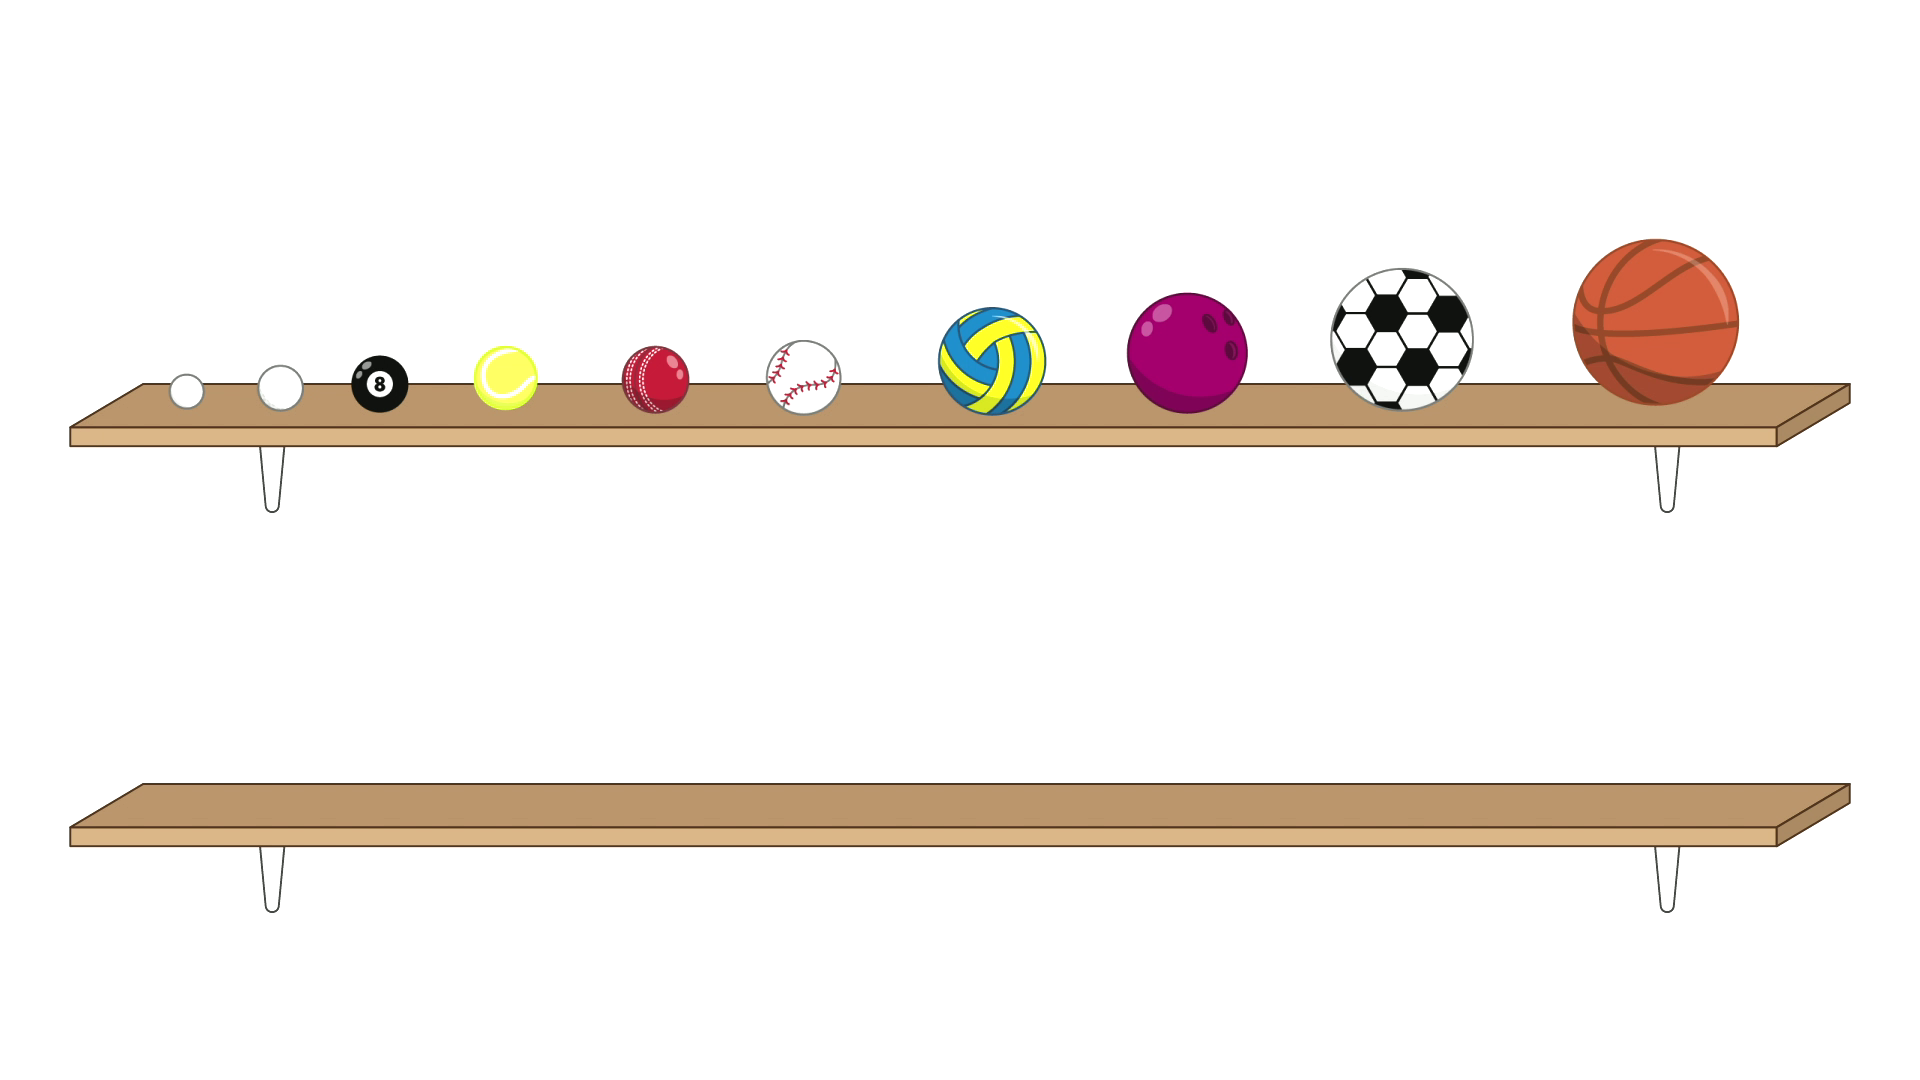 All 10 balls are on the top shelf, in size order. From left to right they are the ping-pong ball, the golf ball, the pool ball, the tennis ball, the cricket ball, the baseball, the netball, the bowling ball, the soccer ball and the basketball.